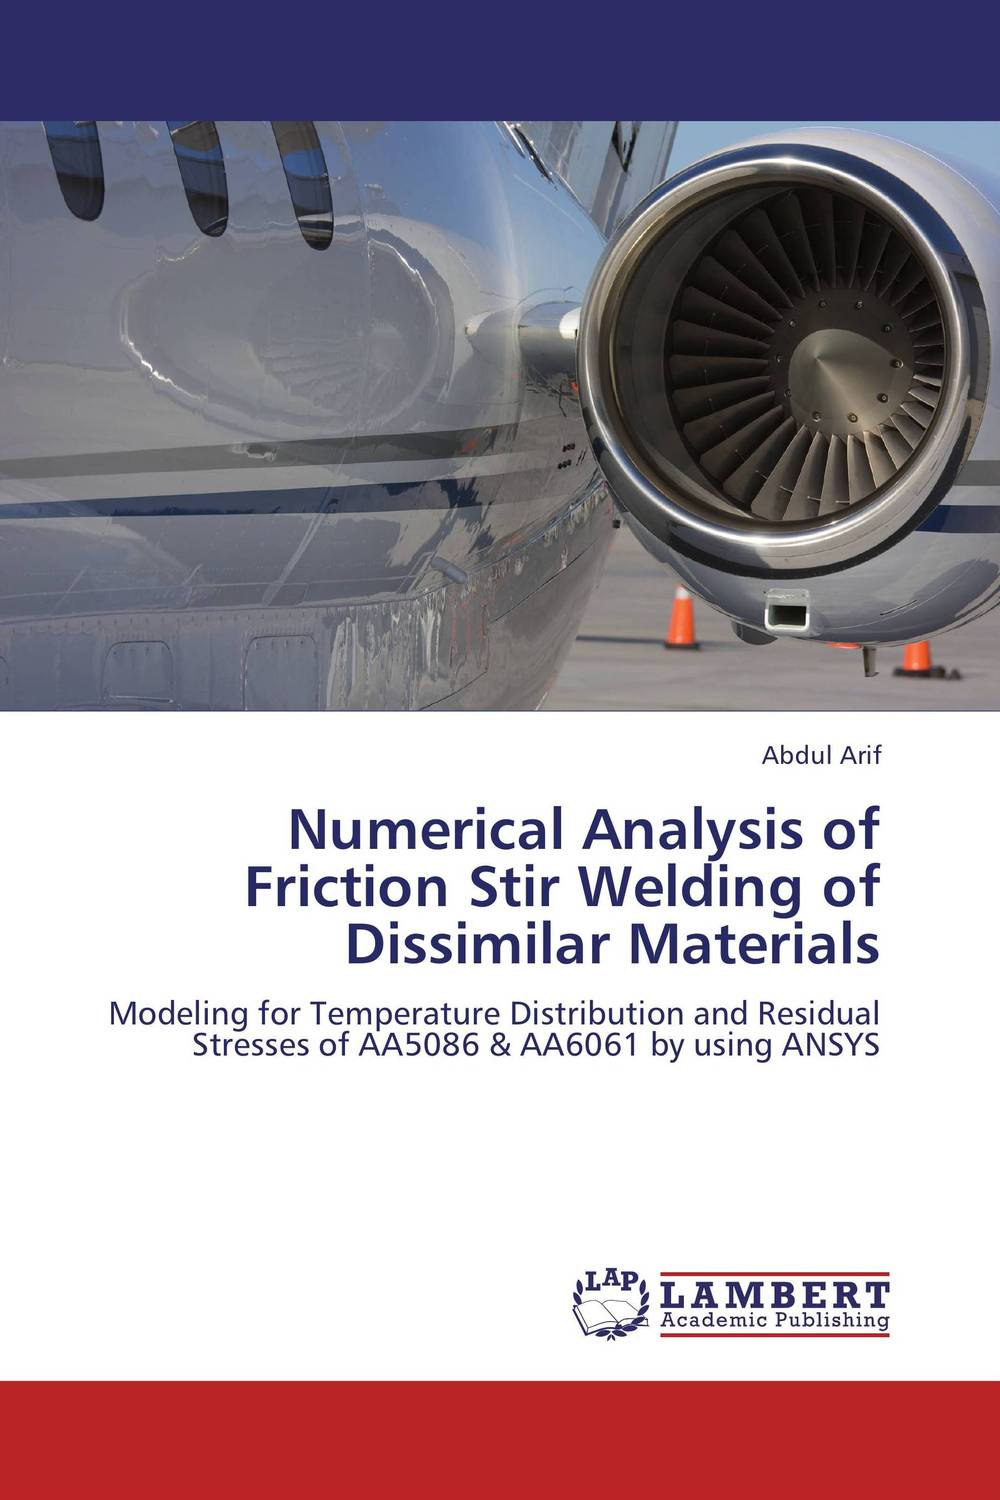 Numerical Analysis of Friction Stir Welding of Dissimilar Materials janet norton on the other side the fall